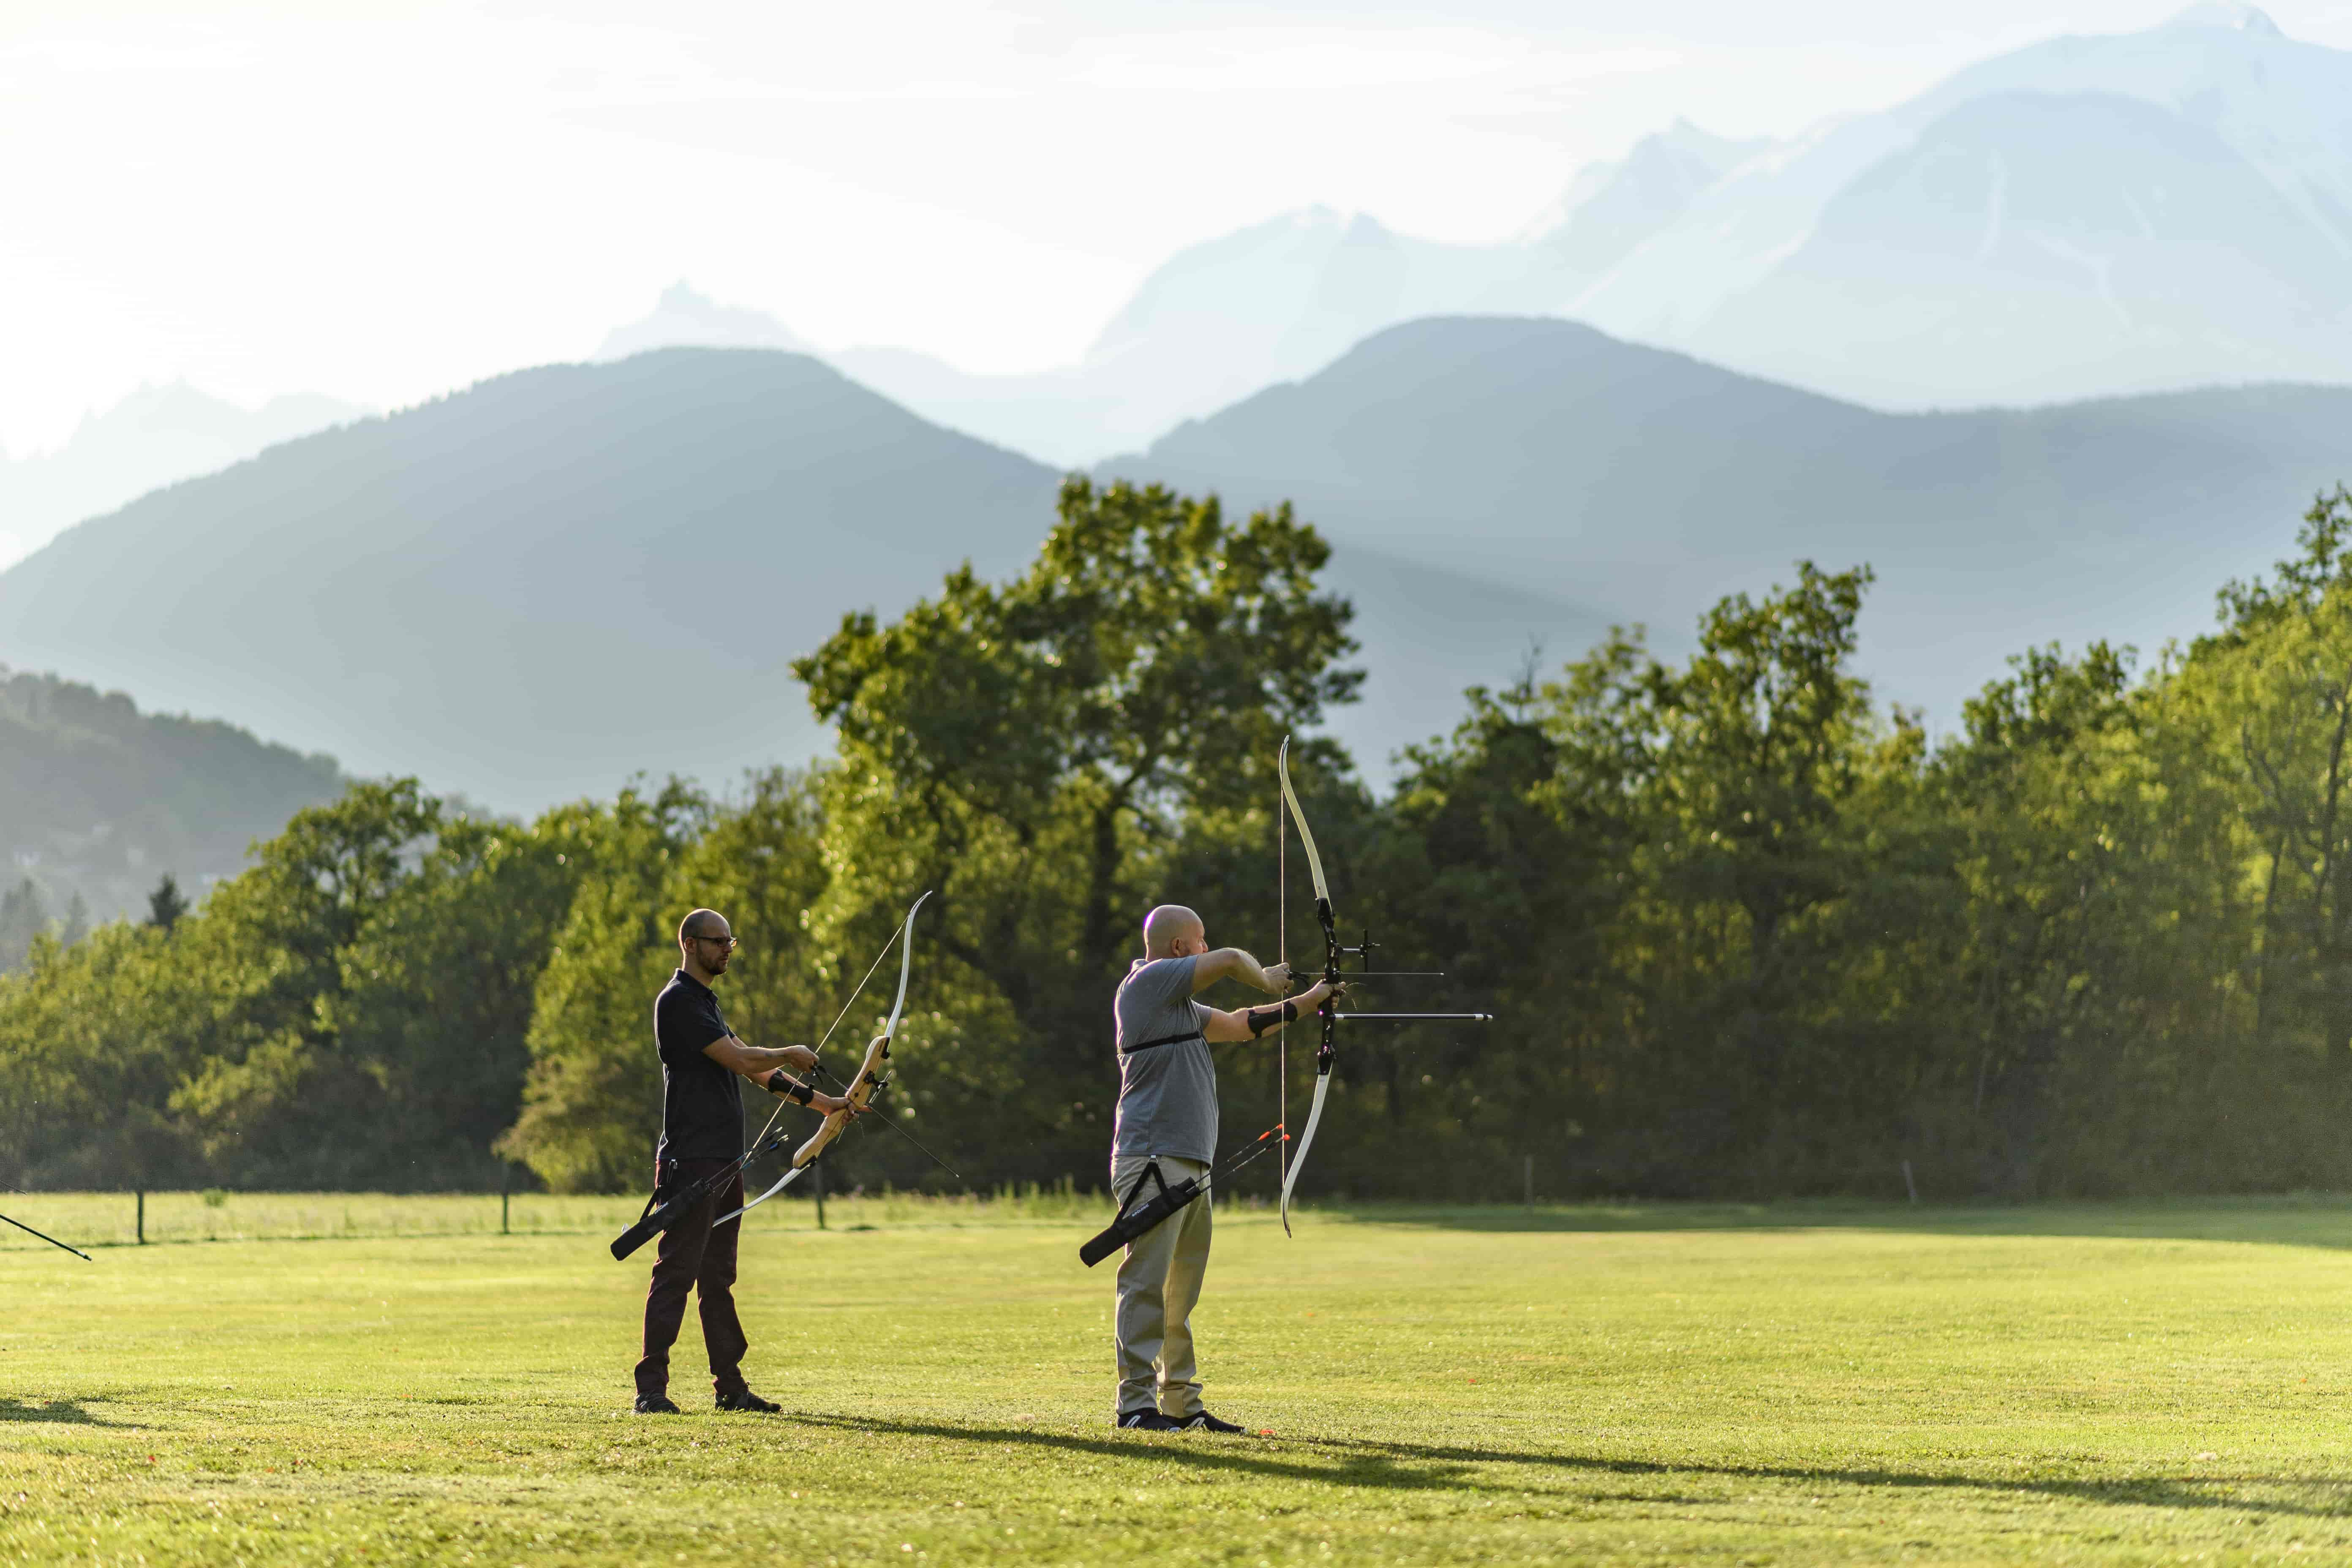 Where can you Practice Archery?